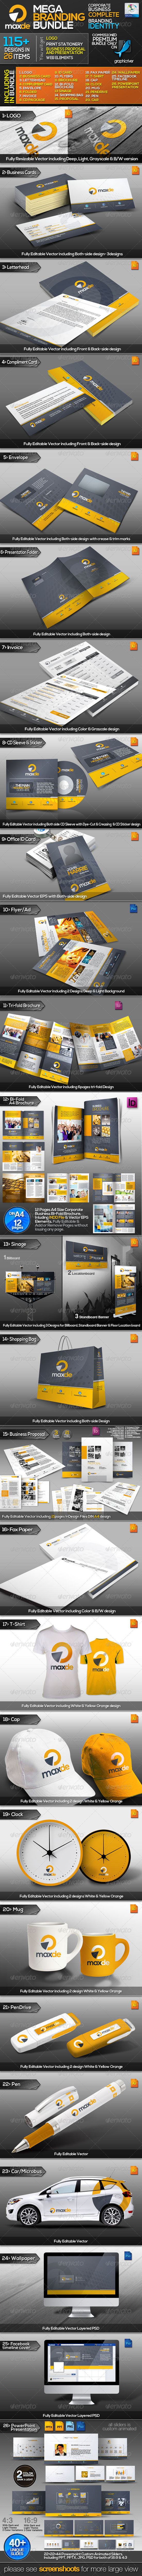 Maxde: Corporate Business ID Mega Branding Bundle - Stationery Print Templates